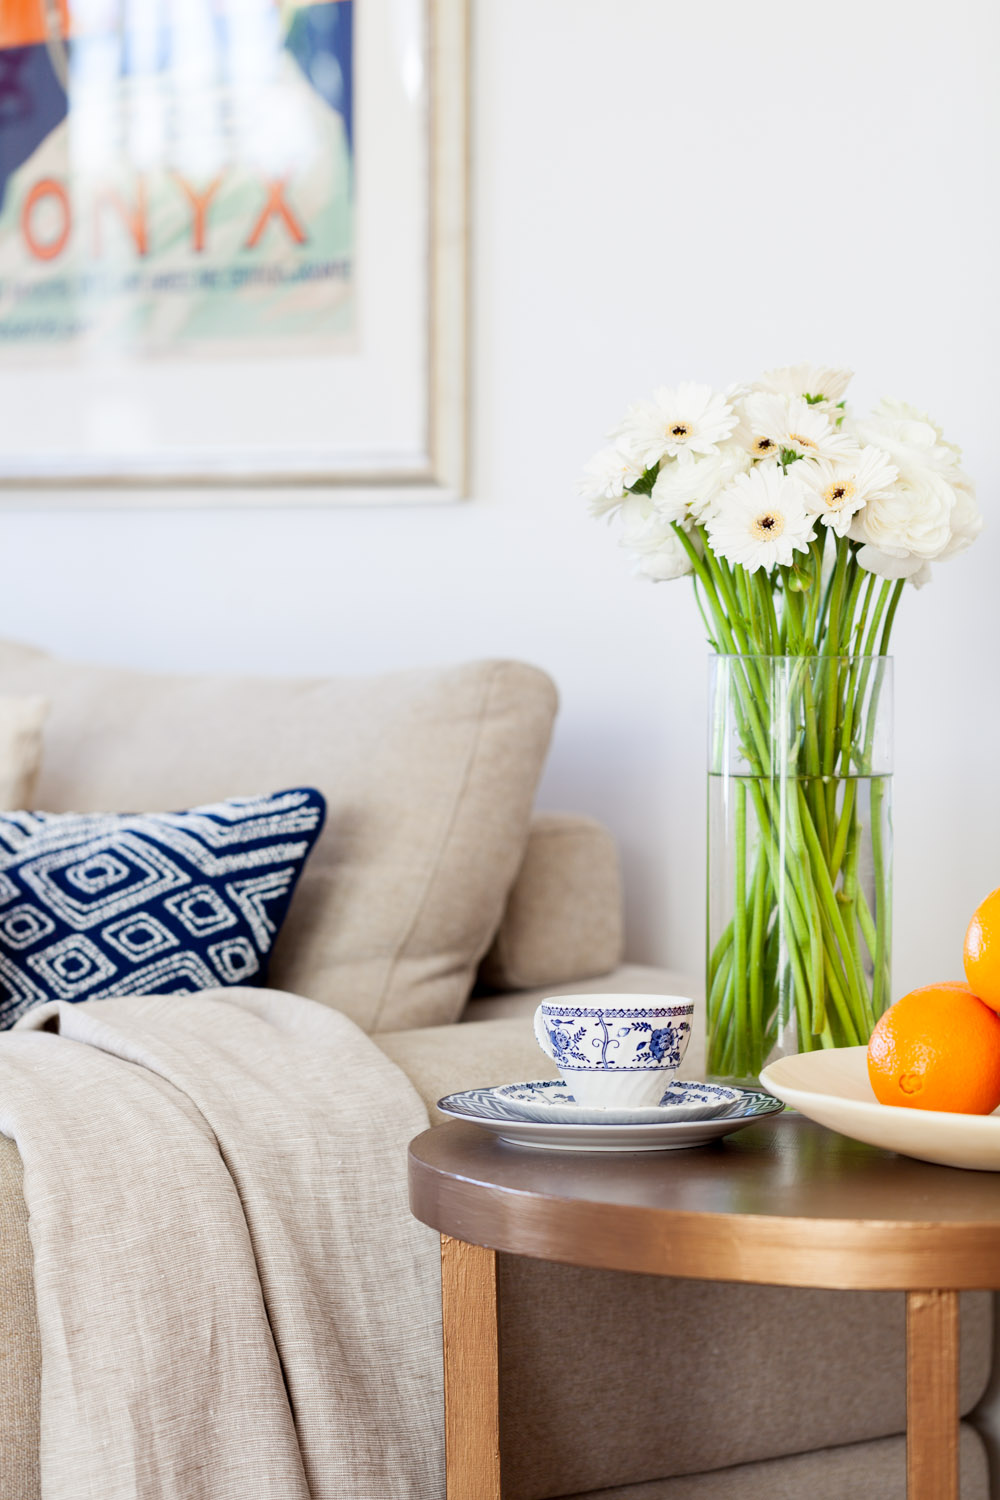 coffeetablestyling